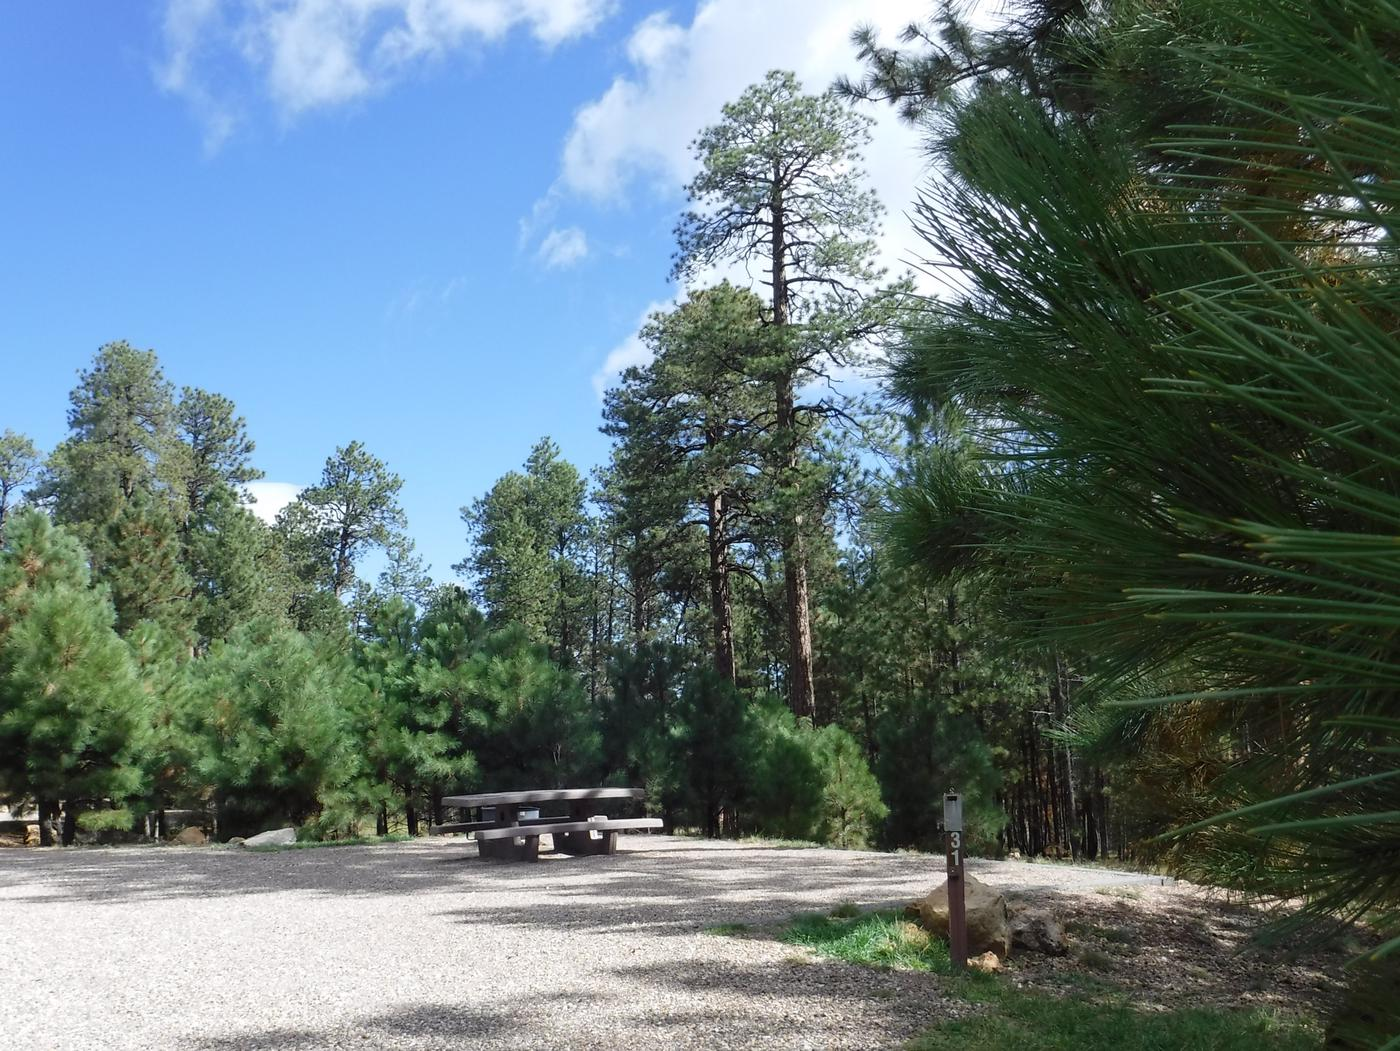 Jacob Lake site #31 featuring entrance, parking, and full camp space view.